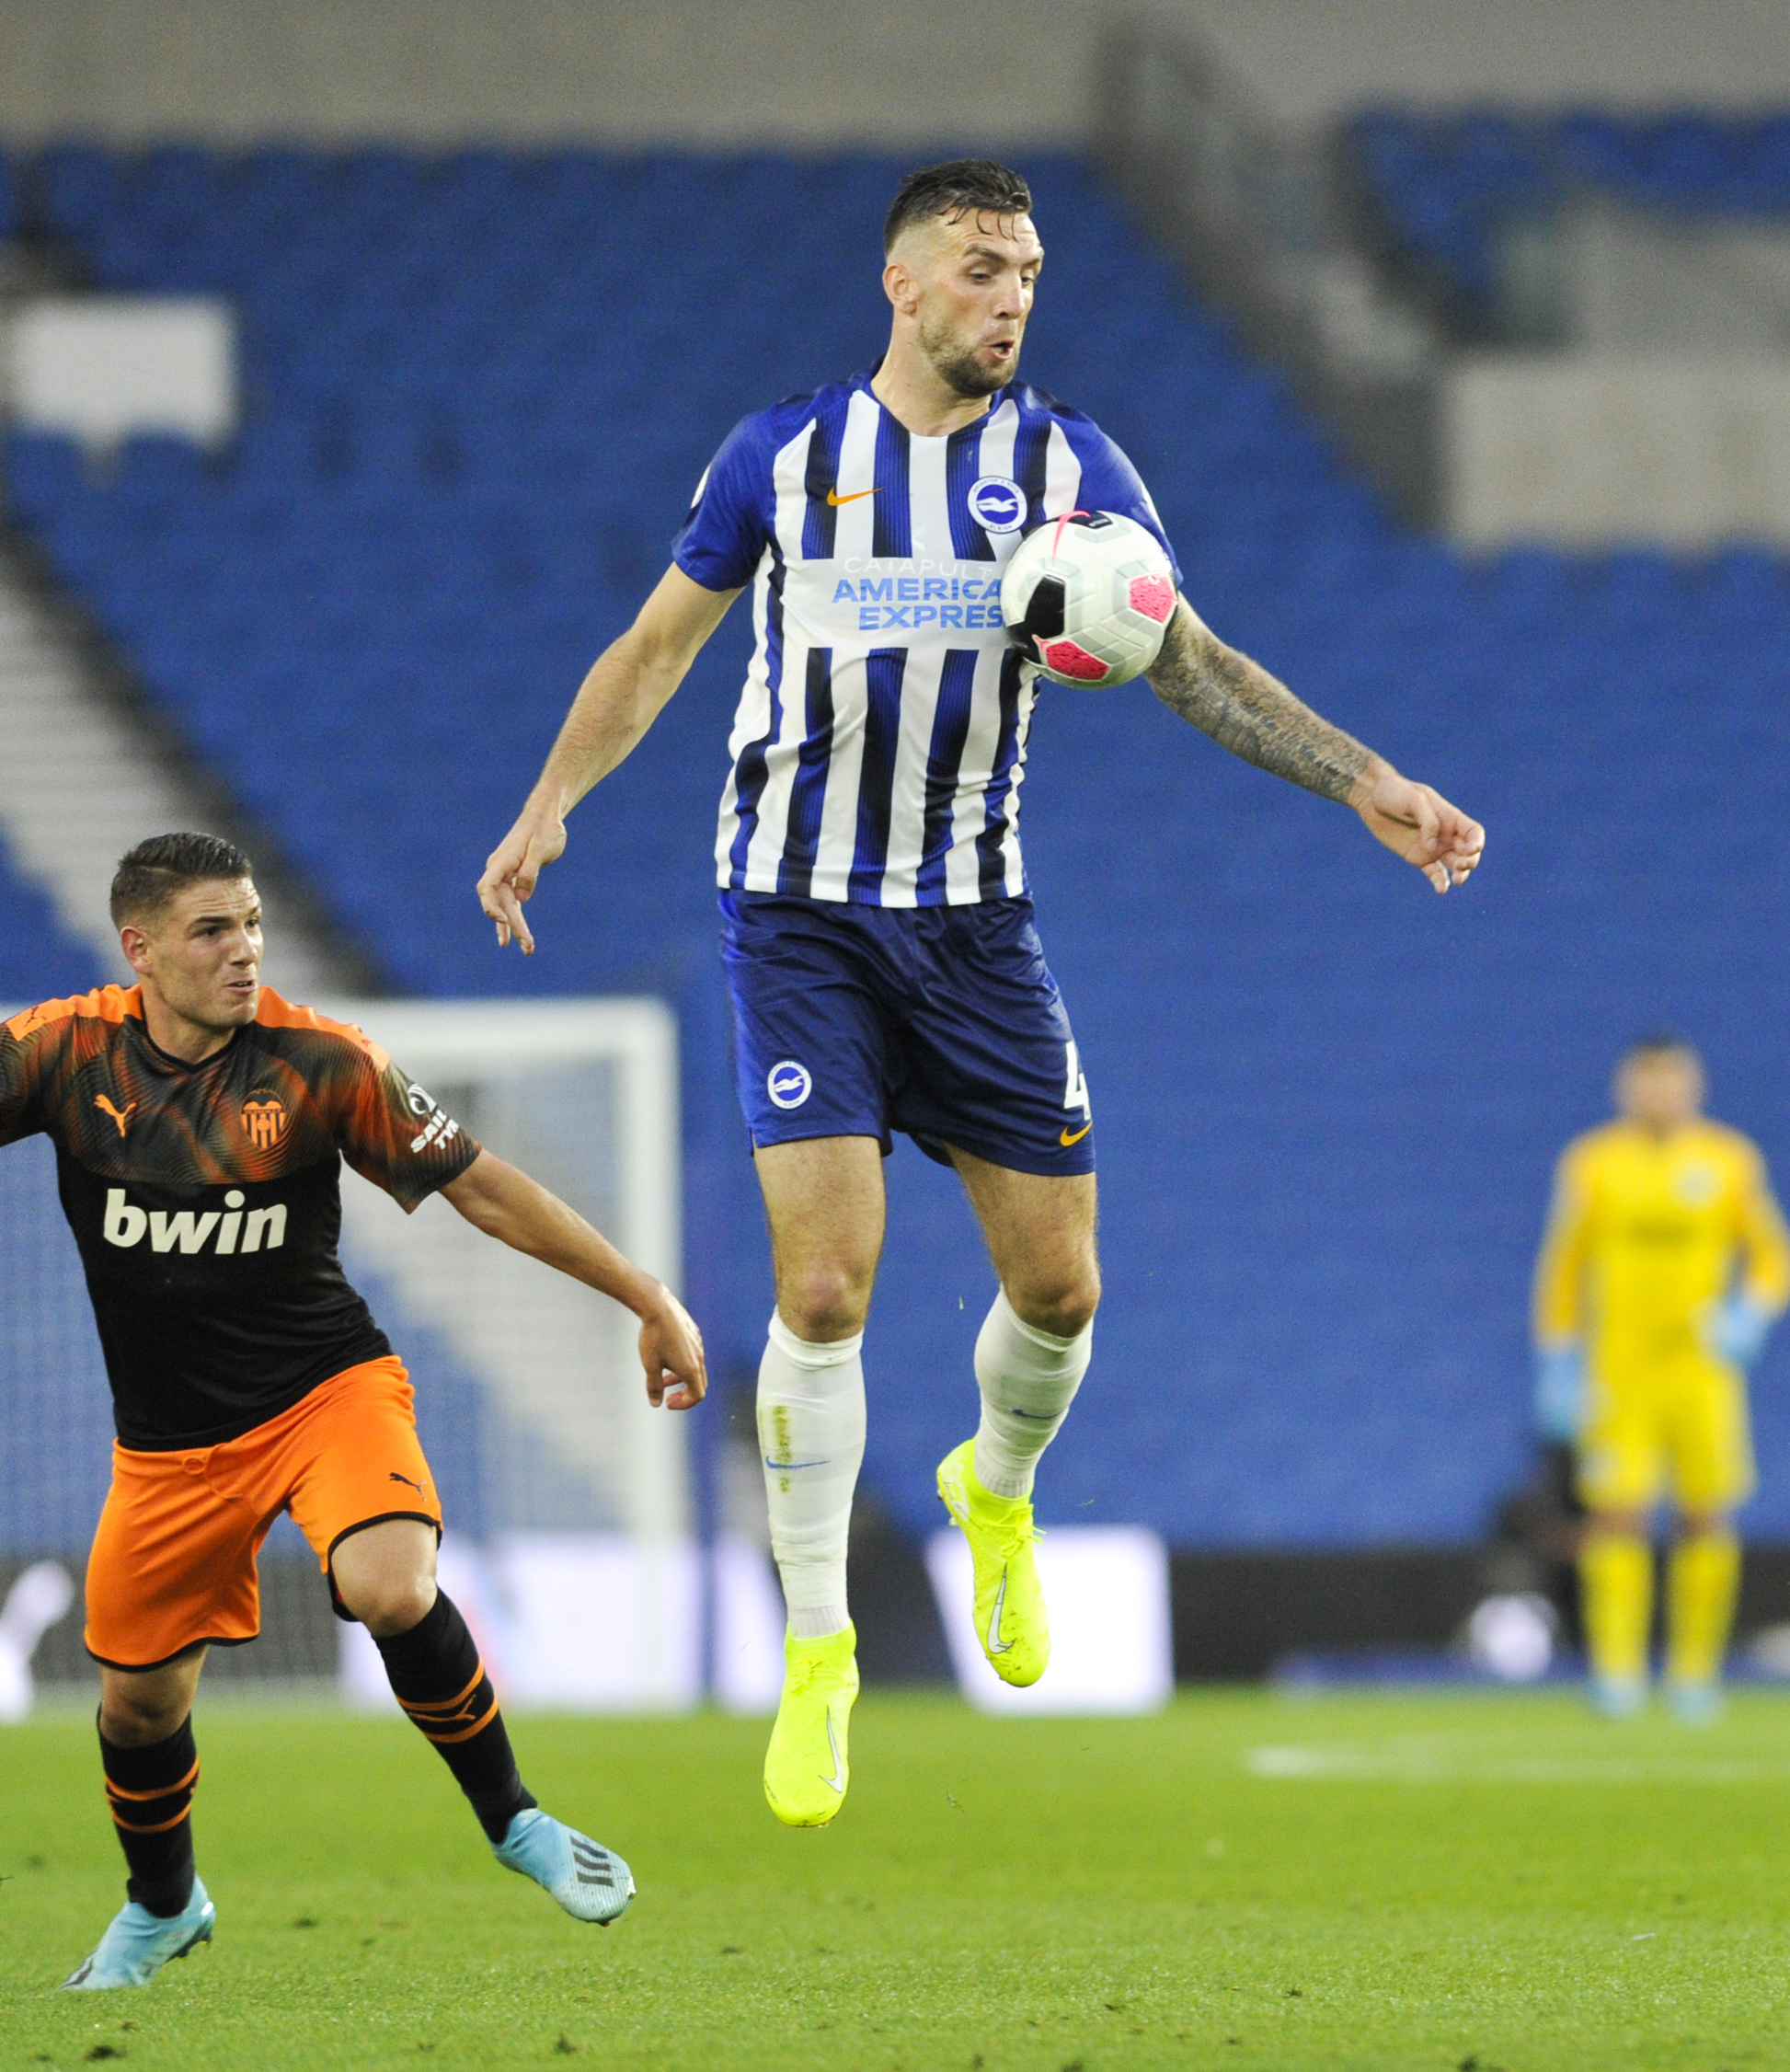 Shane Duffy told there is a seat on the Ireland plane for him - with extra legroom